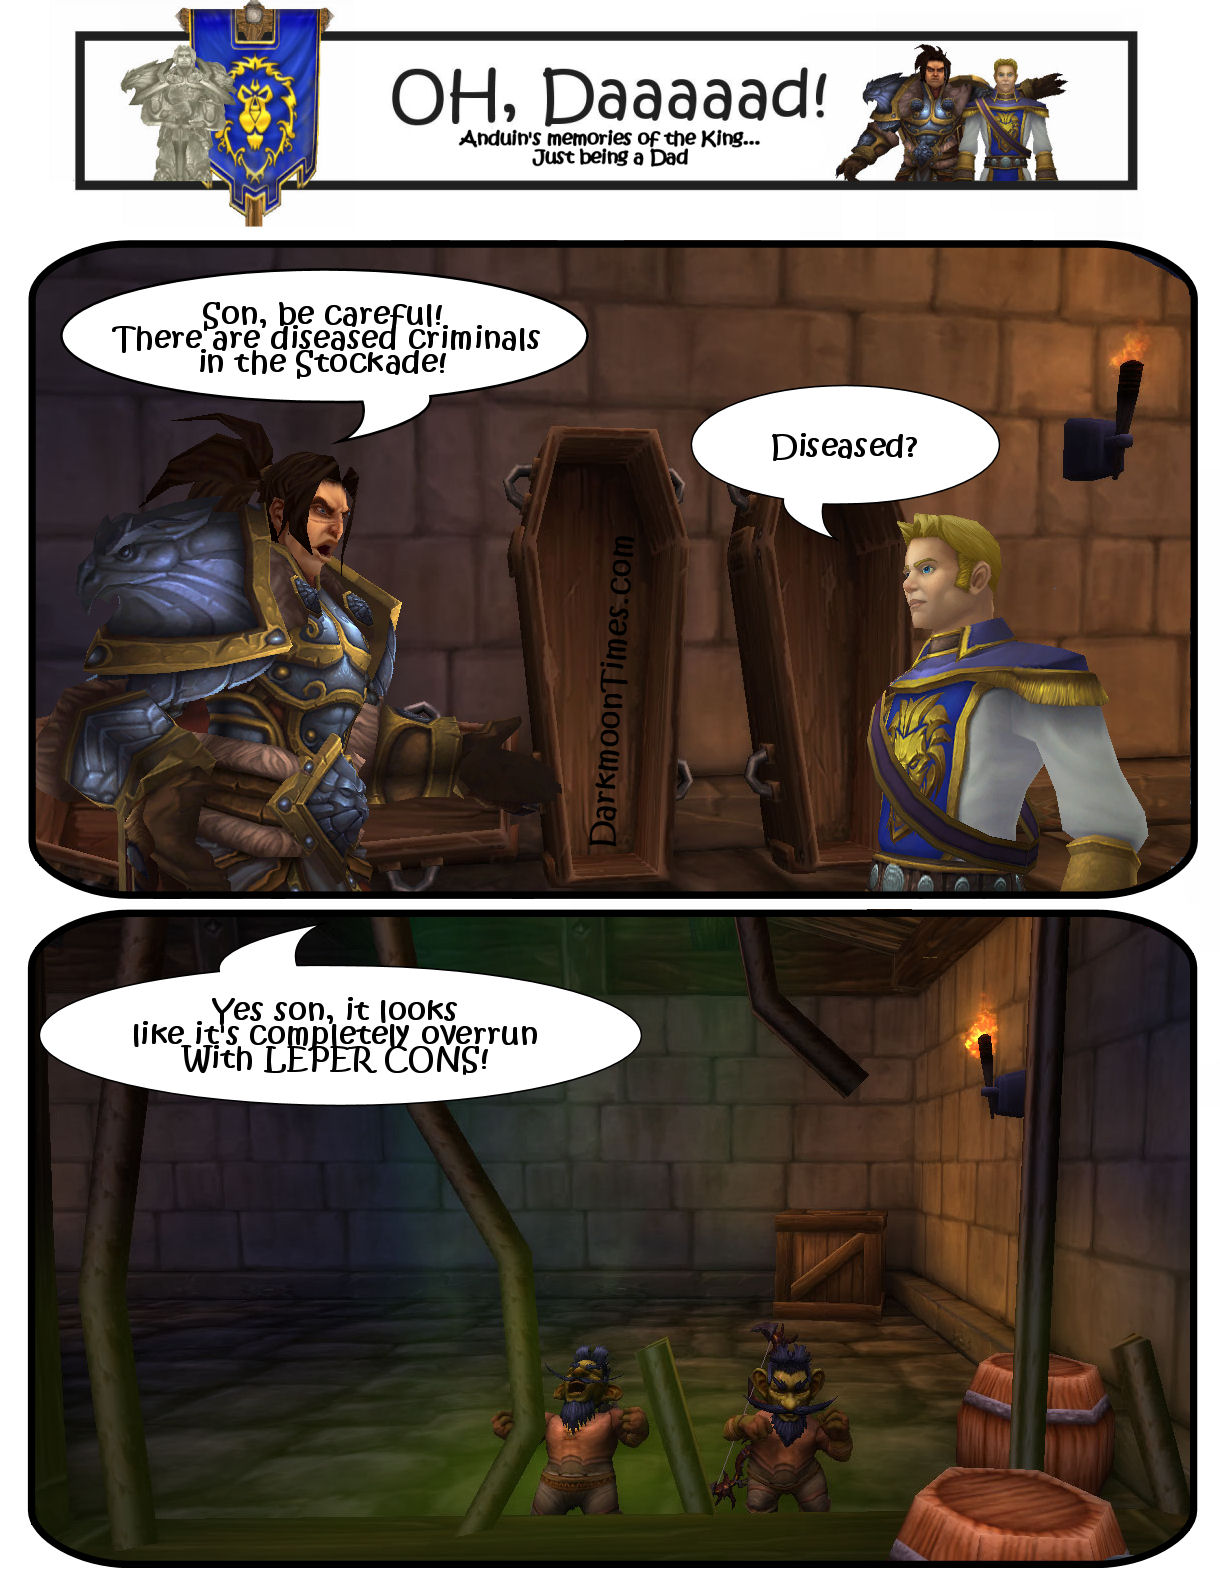 """Varian telling Anduin the Dad Joke """"Becareful the Stockade has been hit by a disease. It's full of Leper Cons"""" and shows 2 Leper Gnomes behind bars."""